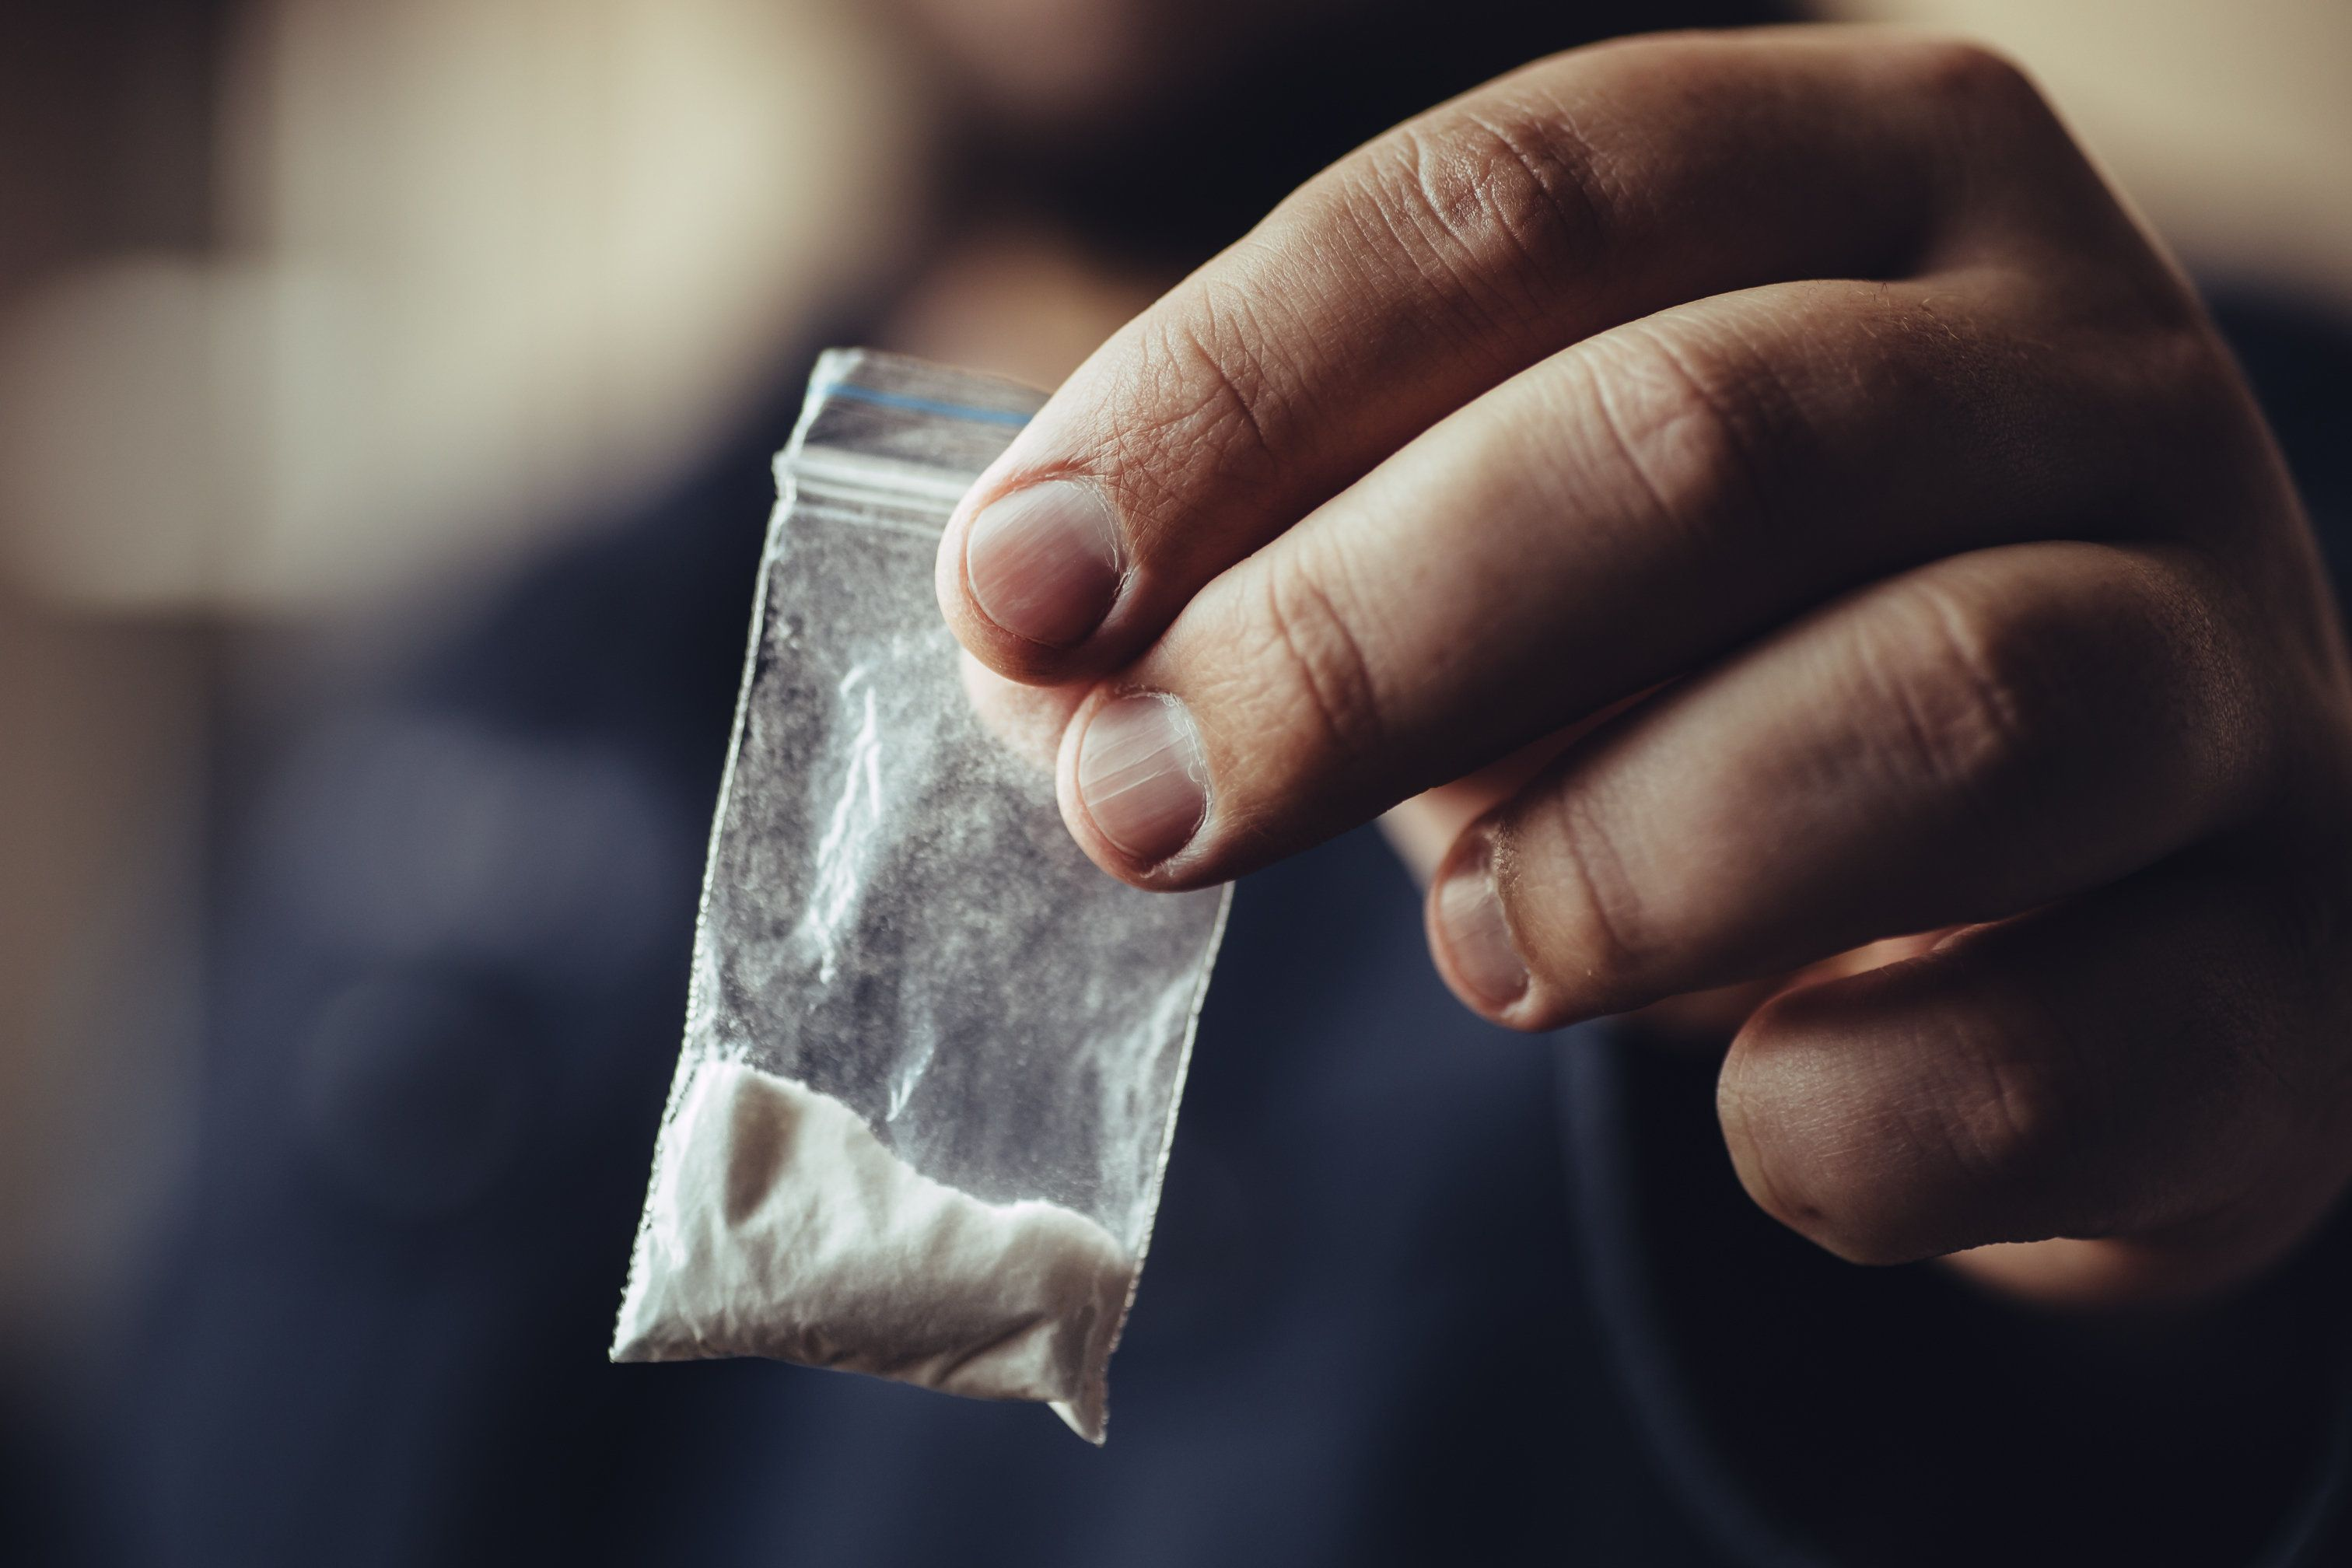 Middle Class Drug Users To Be Targeted As Part Of Violent Crime